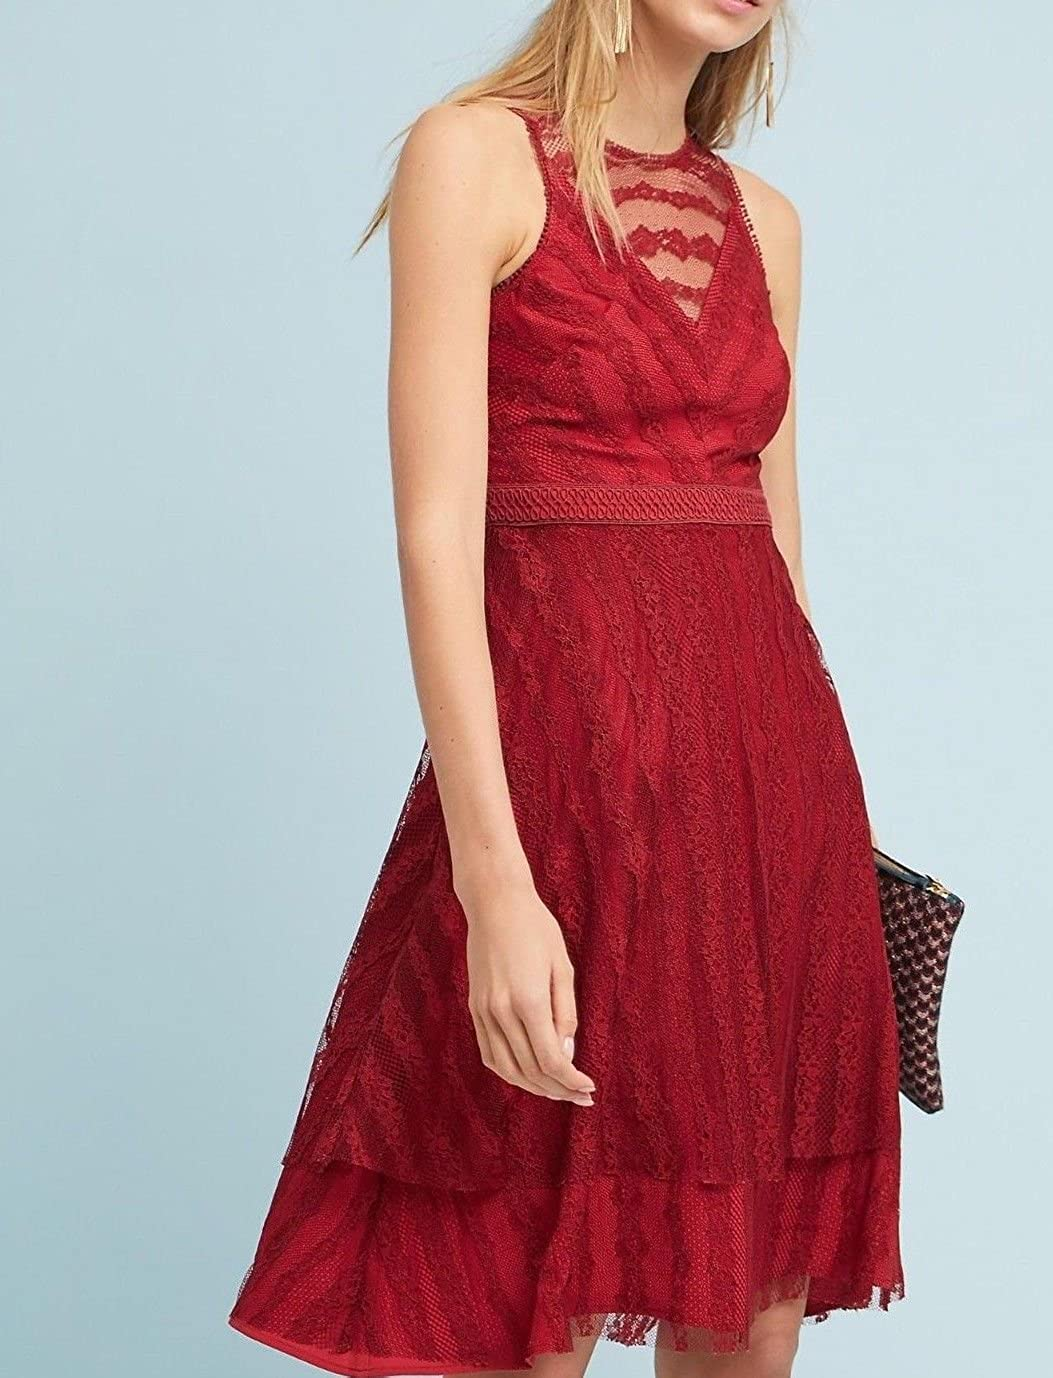 e6a07e982958 Anthropologie Tango Lace Dress by Moulinette Soeurs 188 - NWT at Amazon  Women's Clothing store: